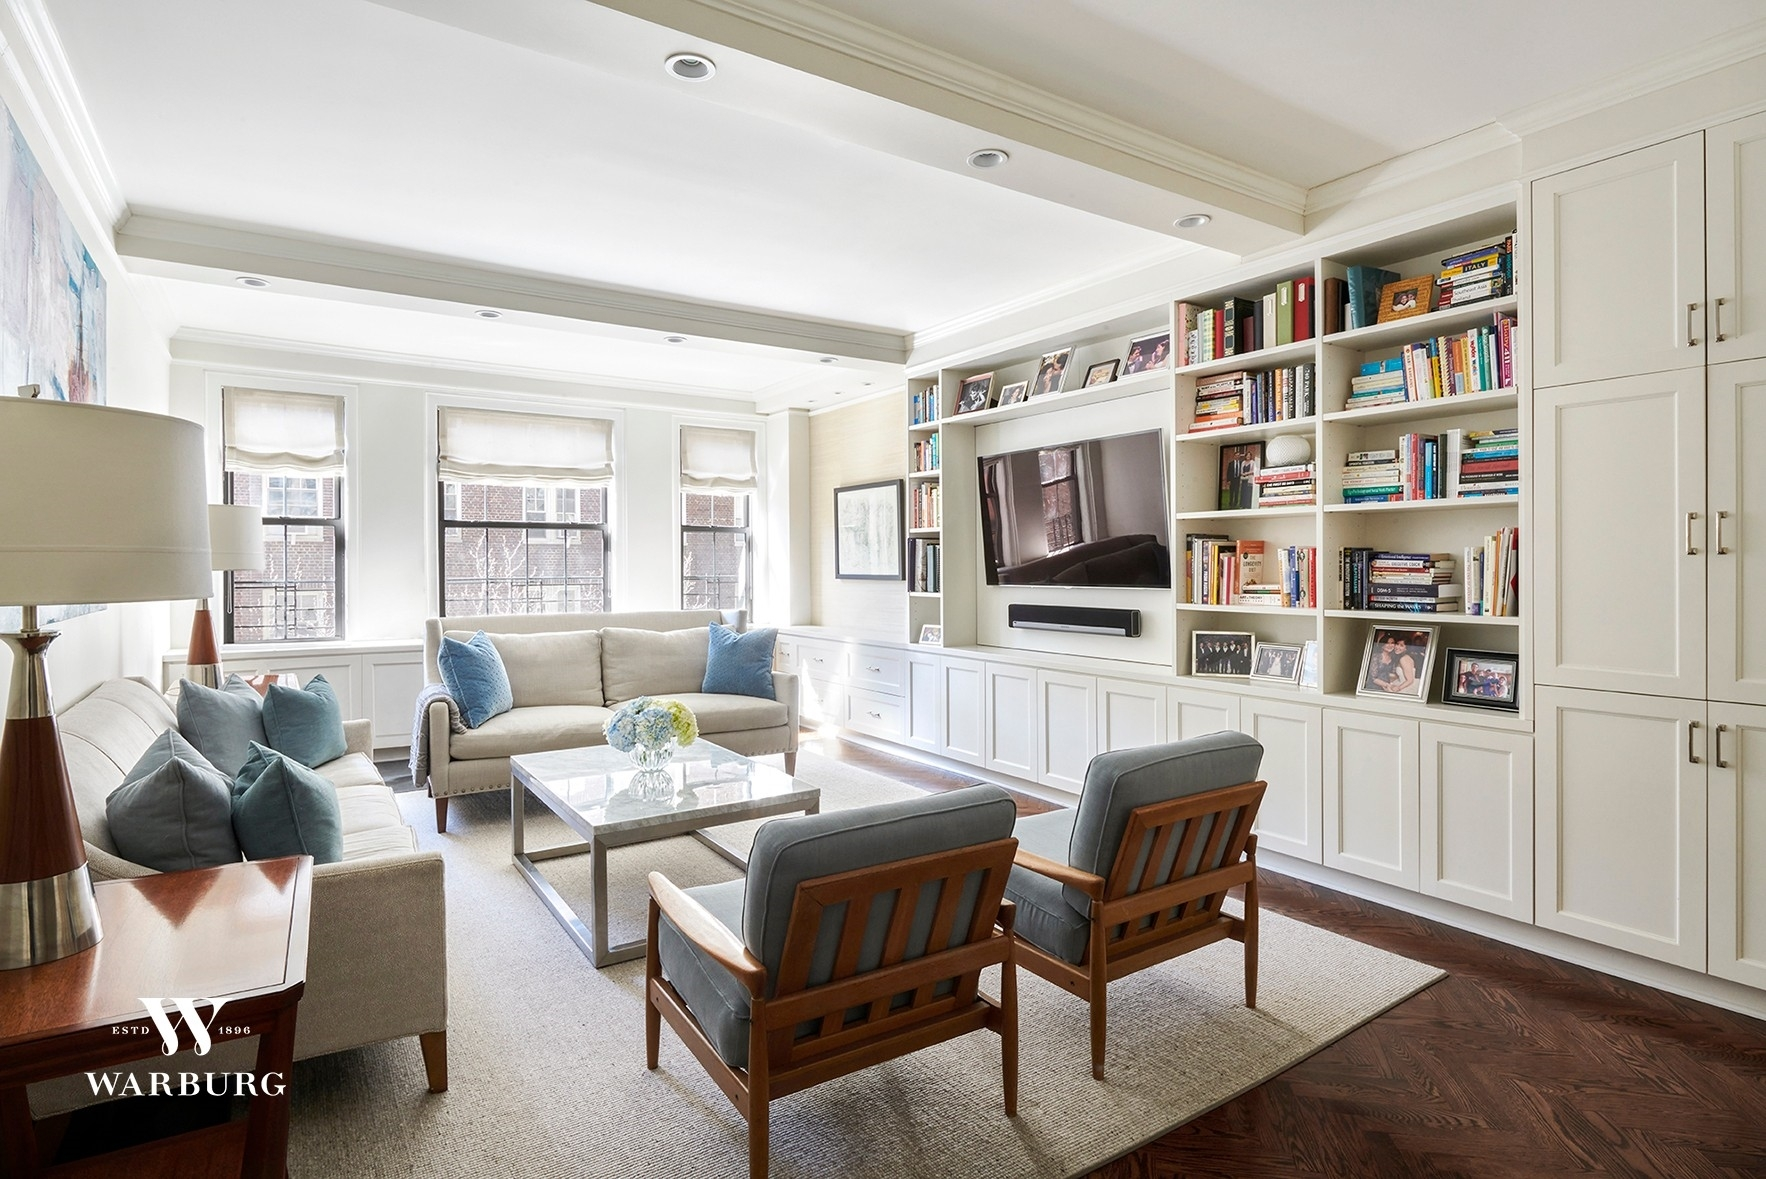 Property at Upper West Side, New York, NY 10023